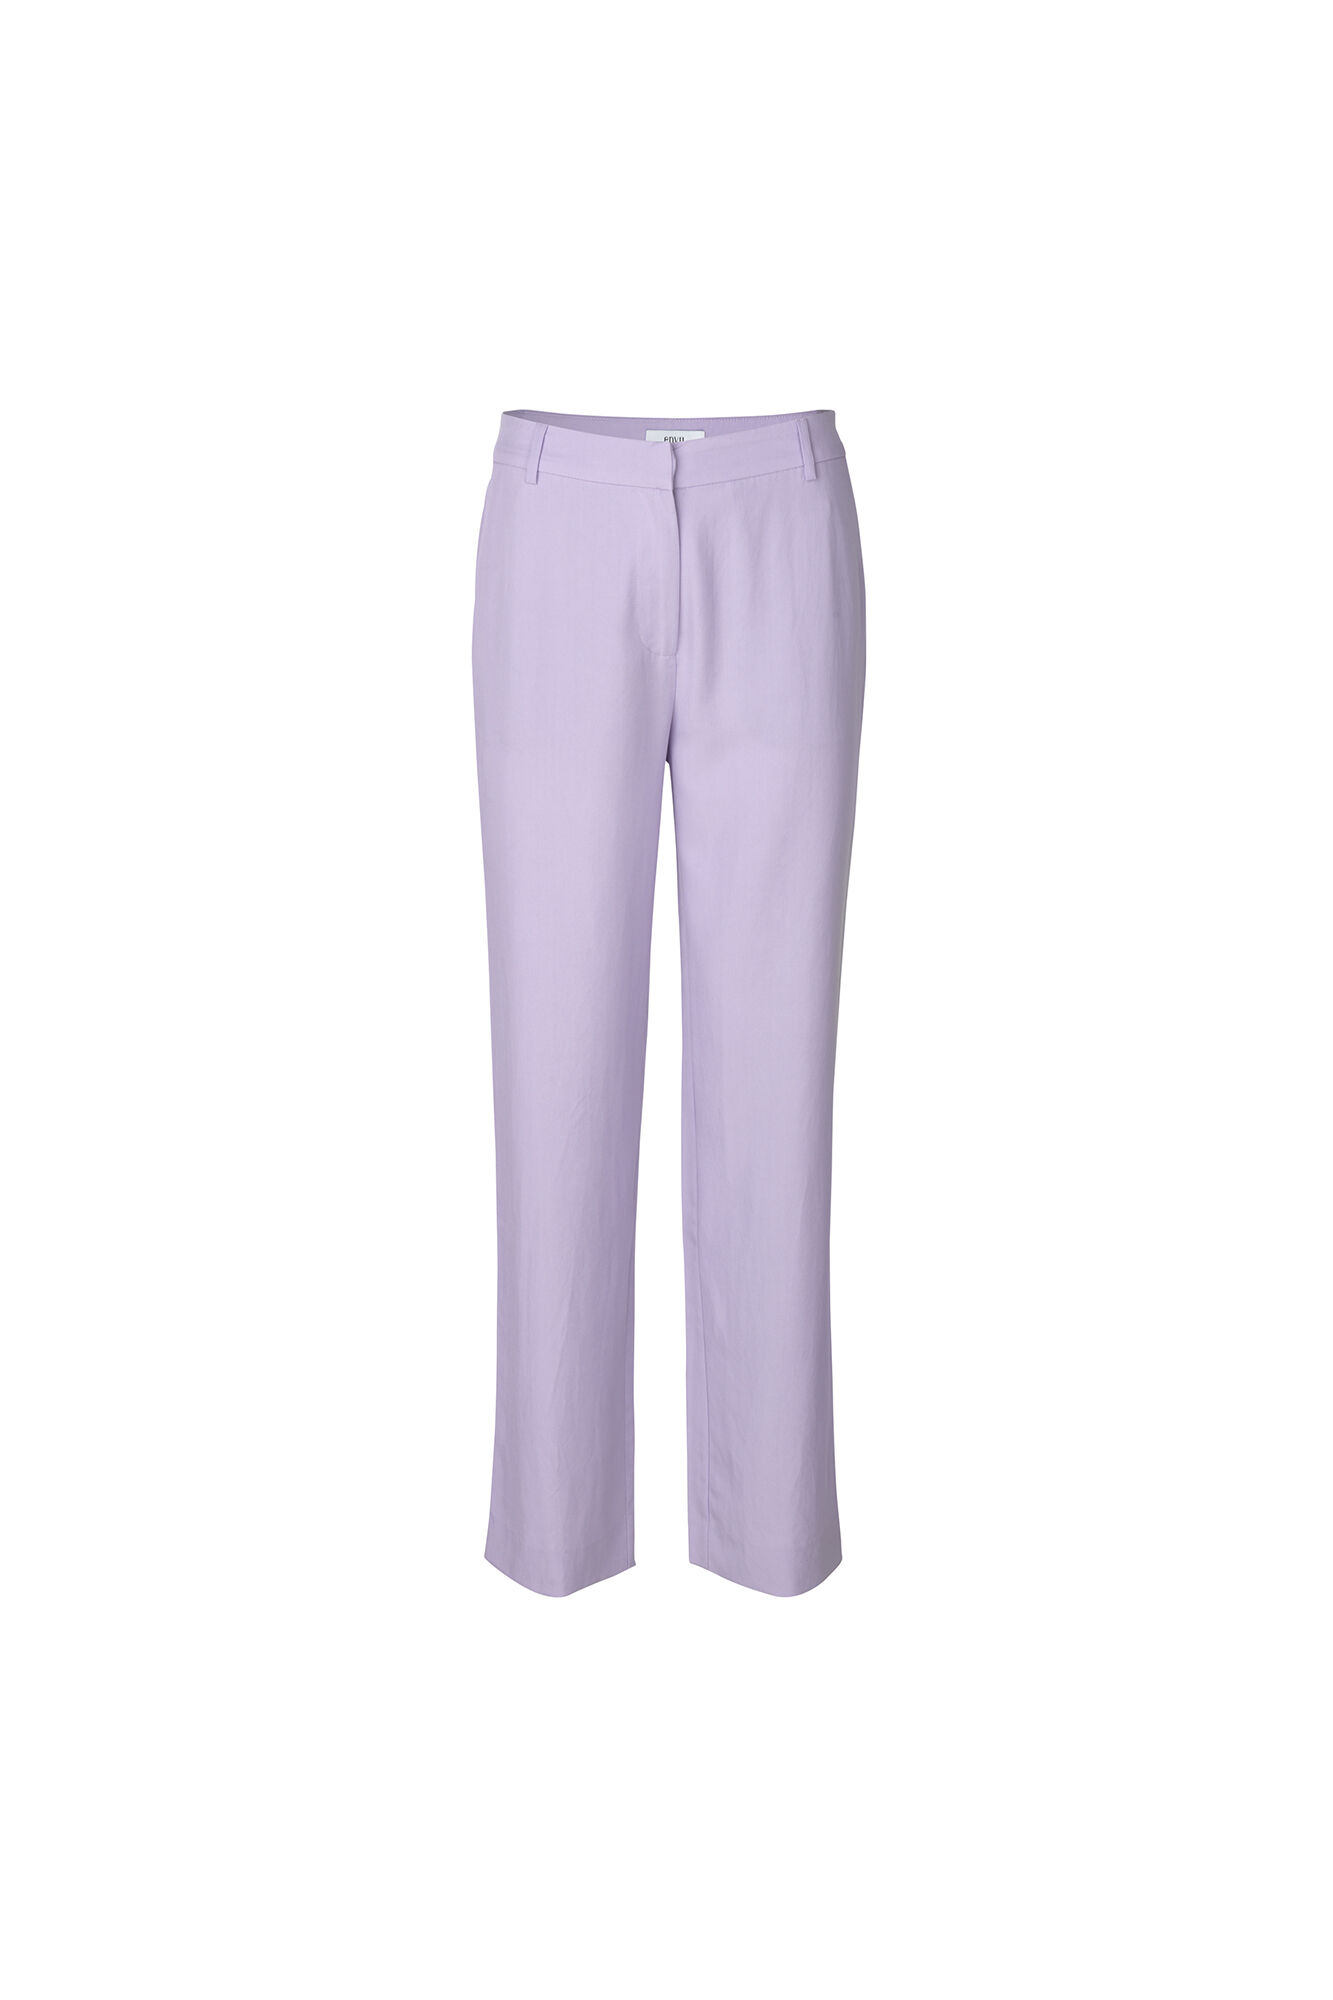 ENCOCOA PANTS 6398